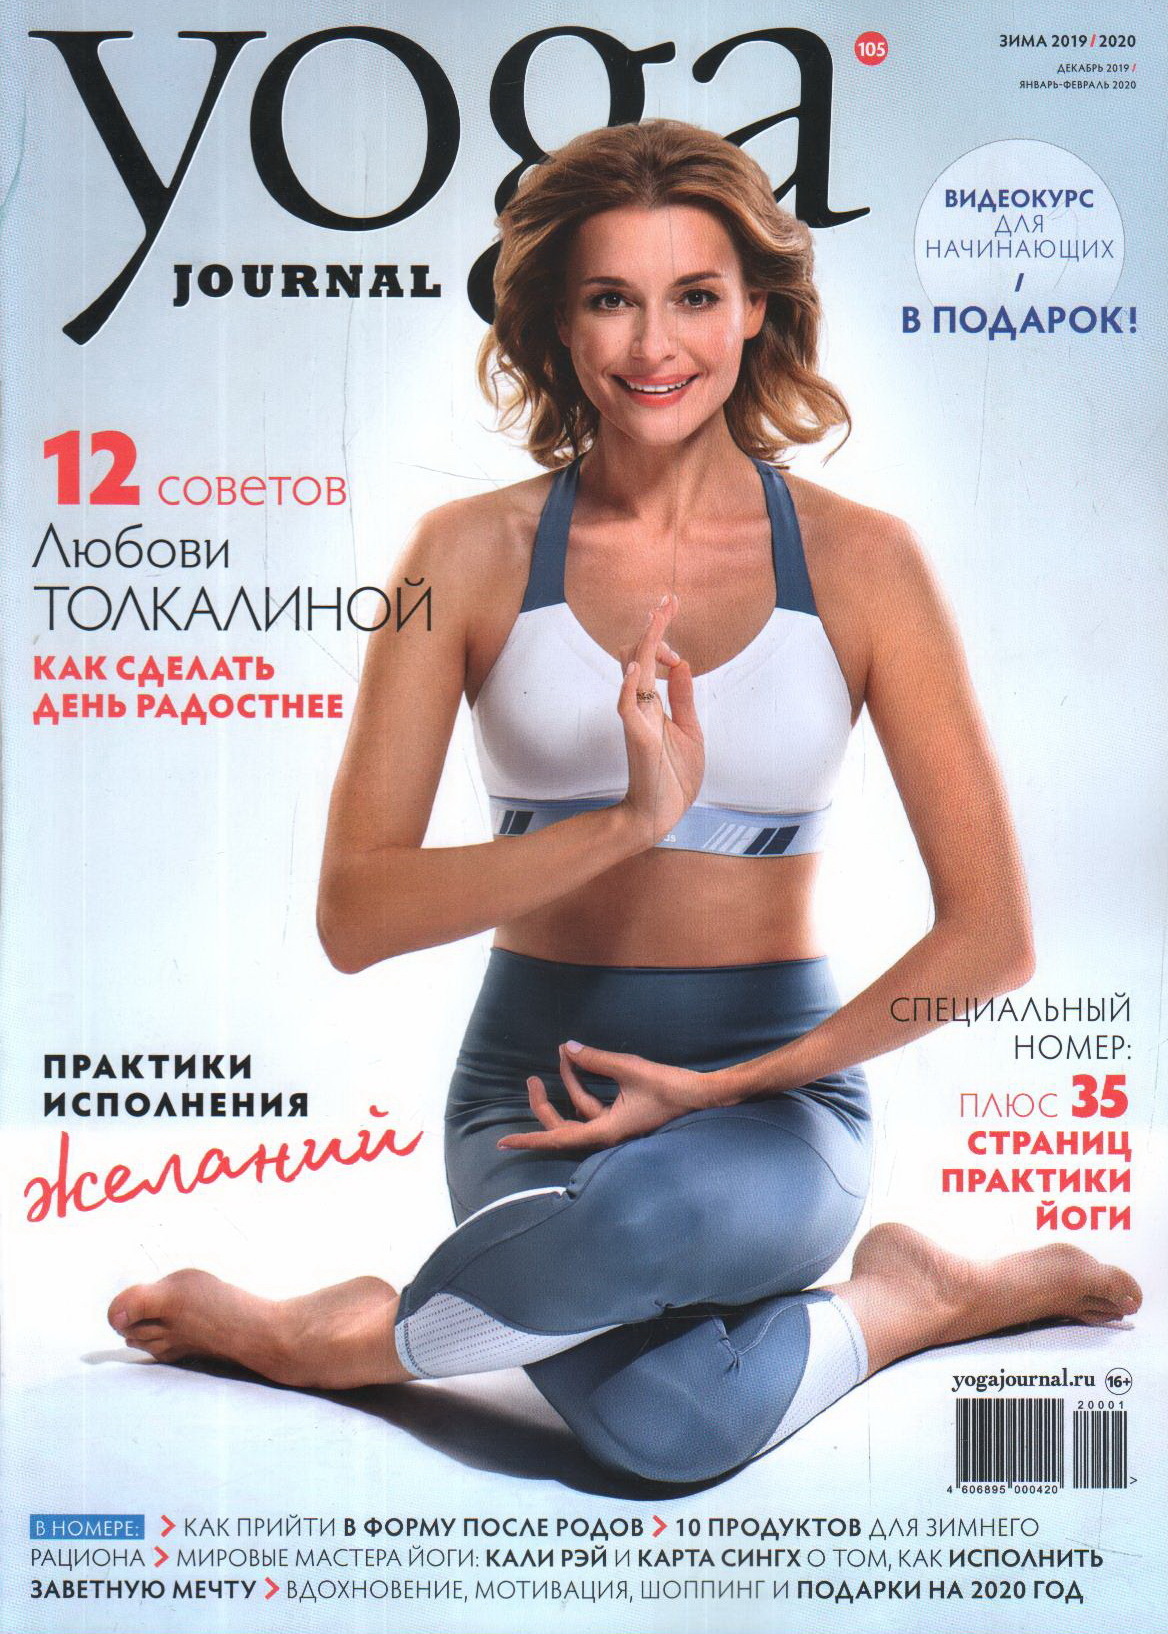 Yoga journal (in Russian)